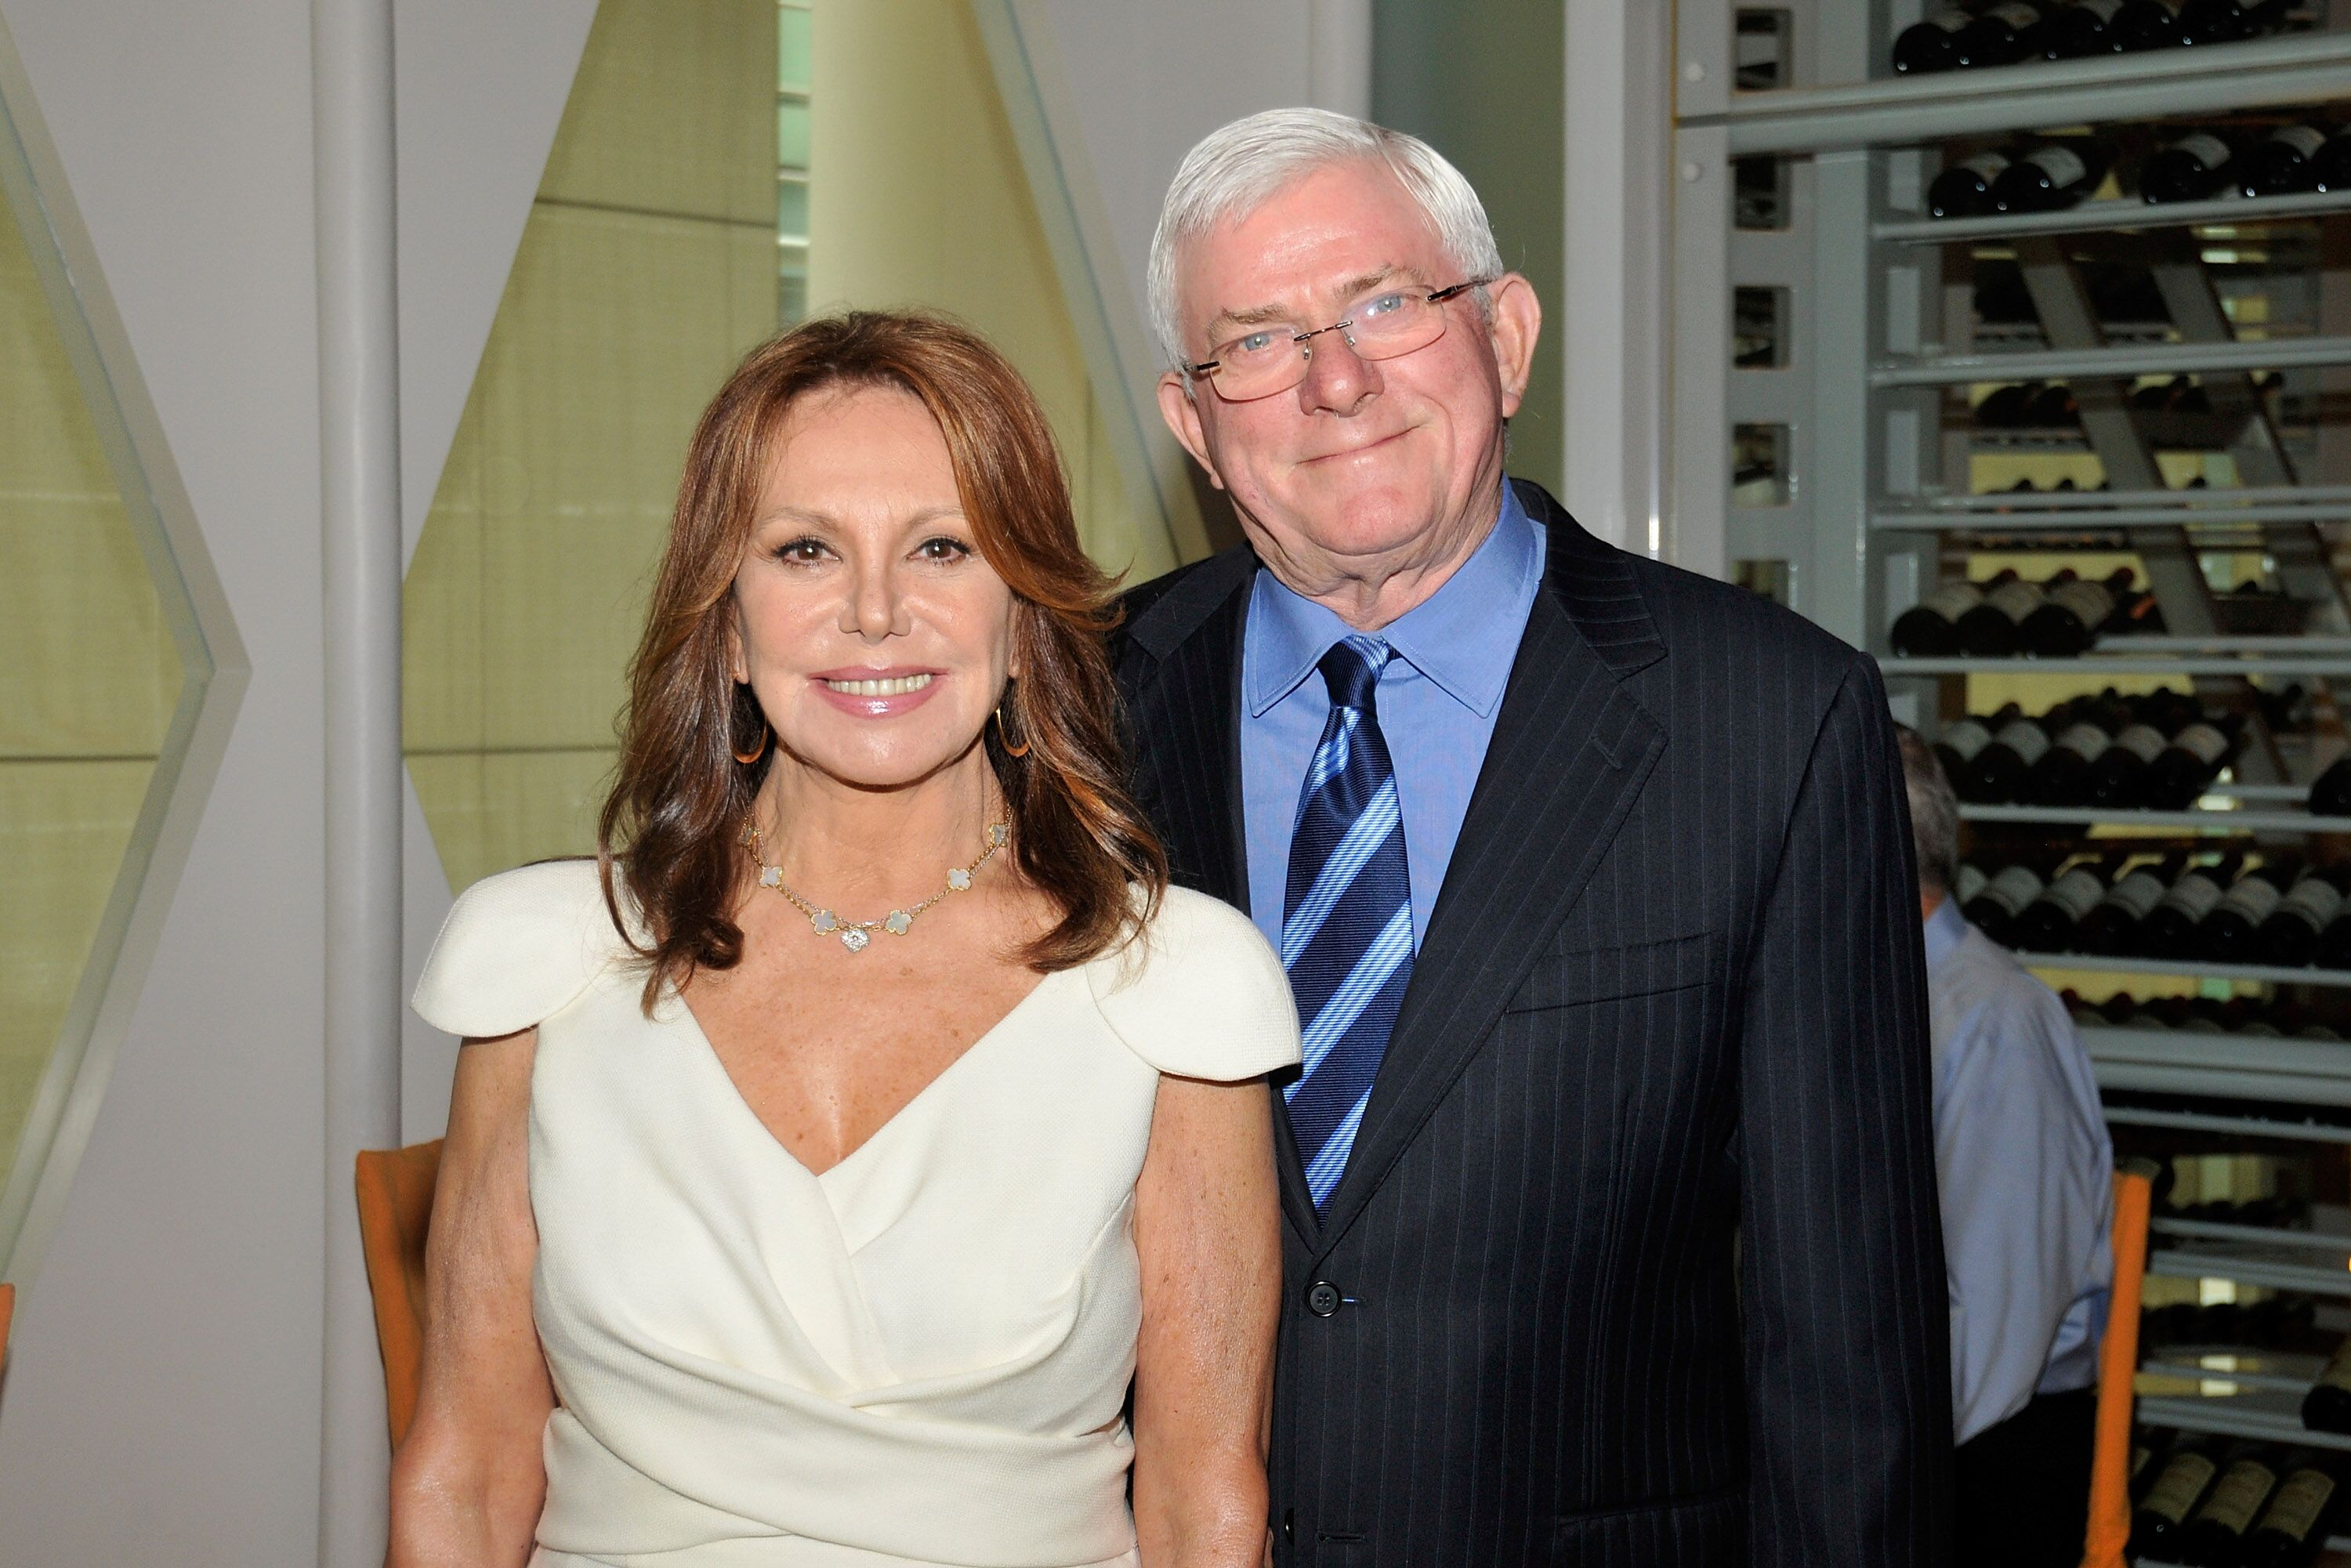 Marlo Thomas and Phil Donahue attend the 2011 Jefferson Awards for Public Service. | Source: Getty Images